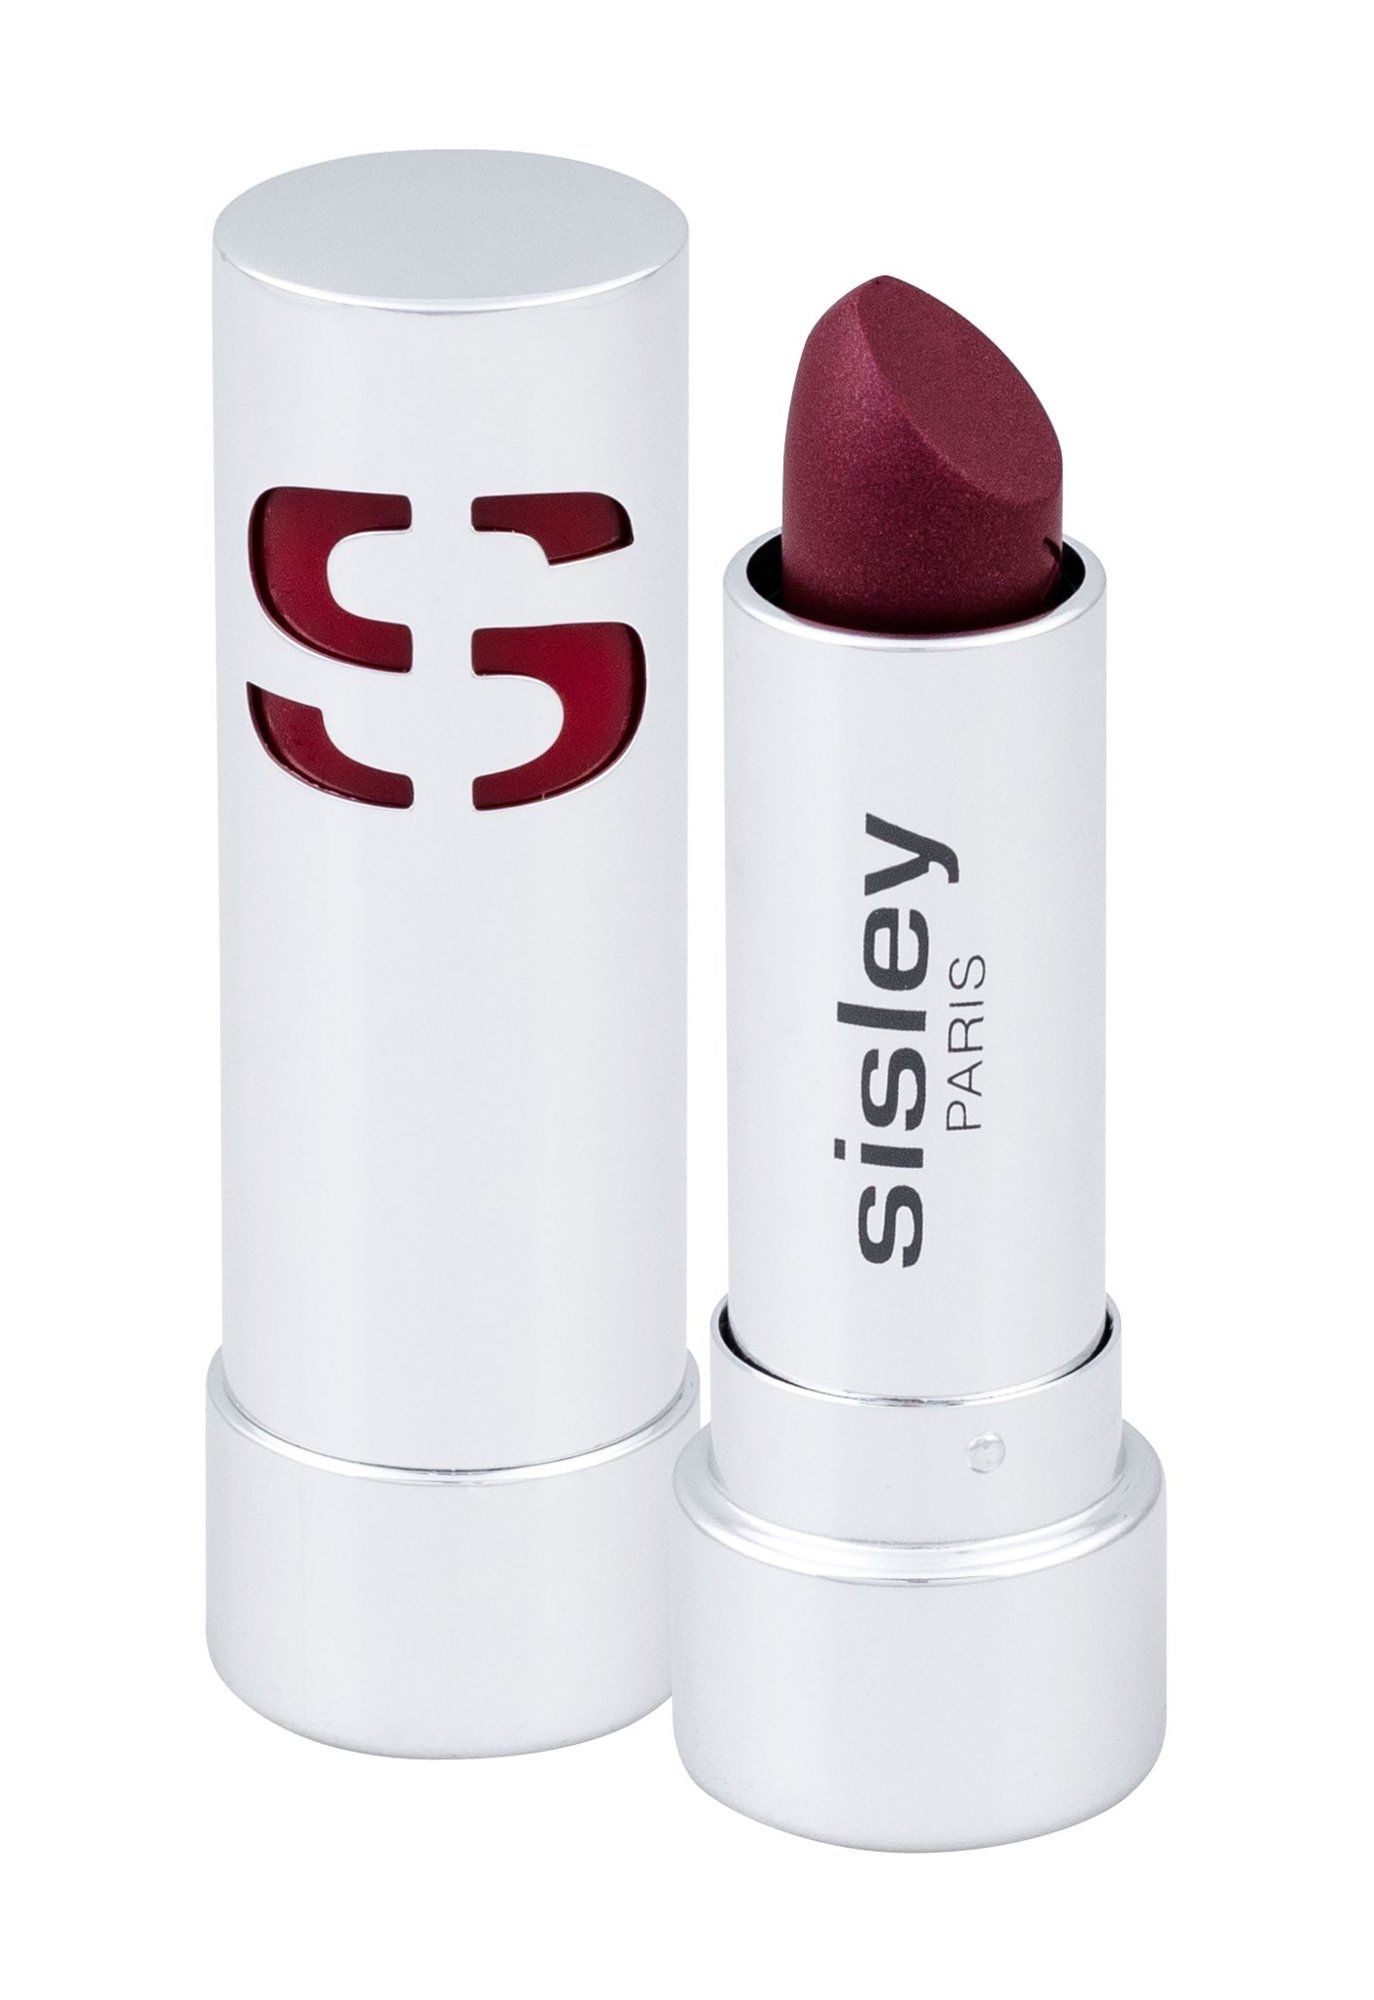 Sisley Phyto Lip Shine Lipstick Cosmetic 3g 12 Sheer Plum